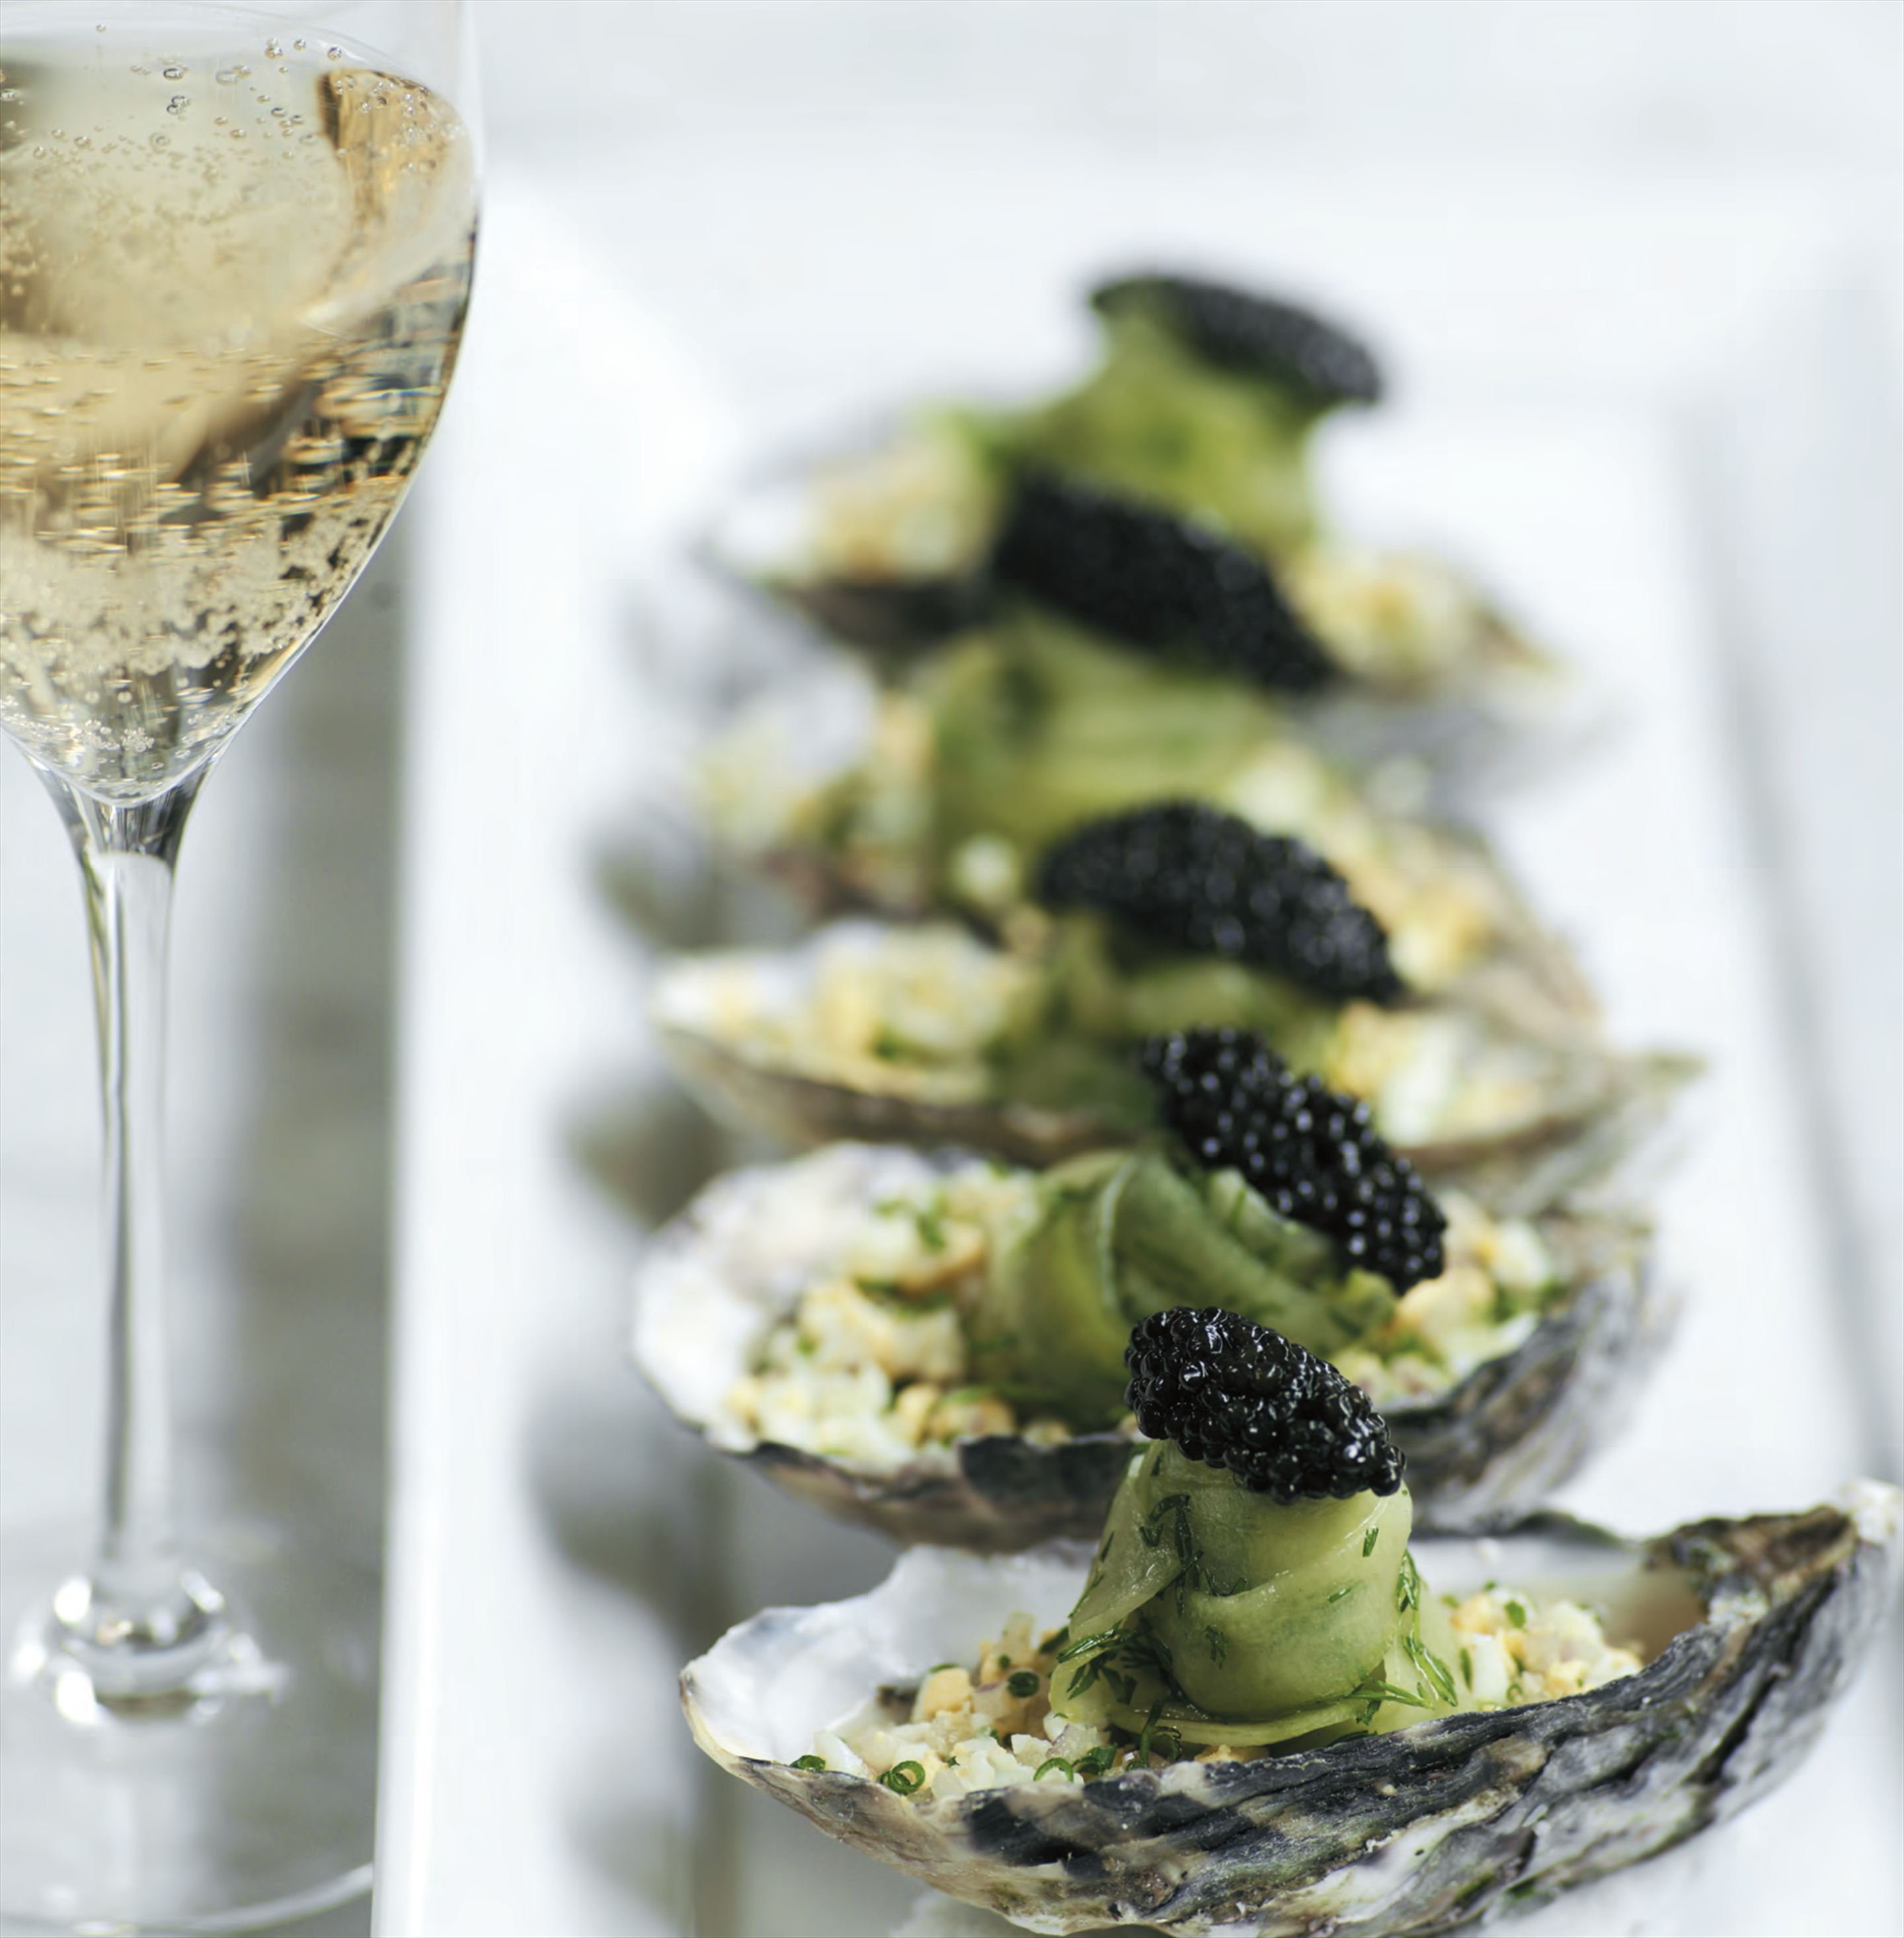 Jumbo St Helen's Pacific oysters with horseradish, pickled cucumber and Osietra caviar